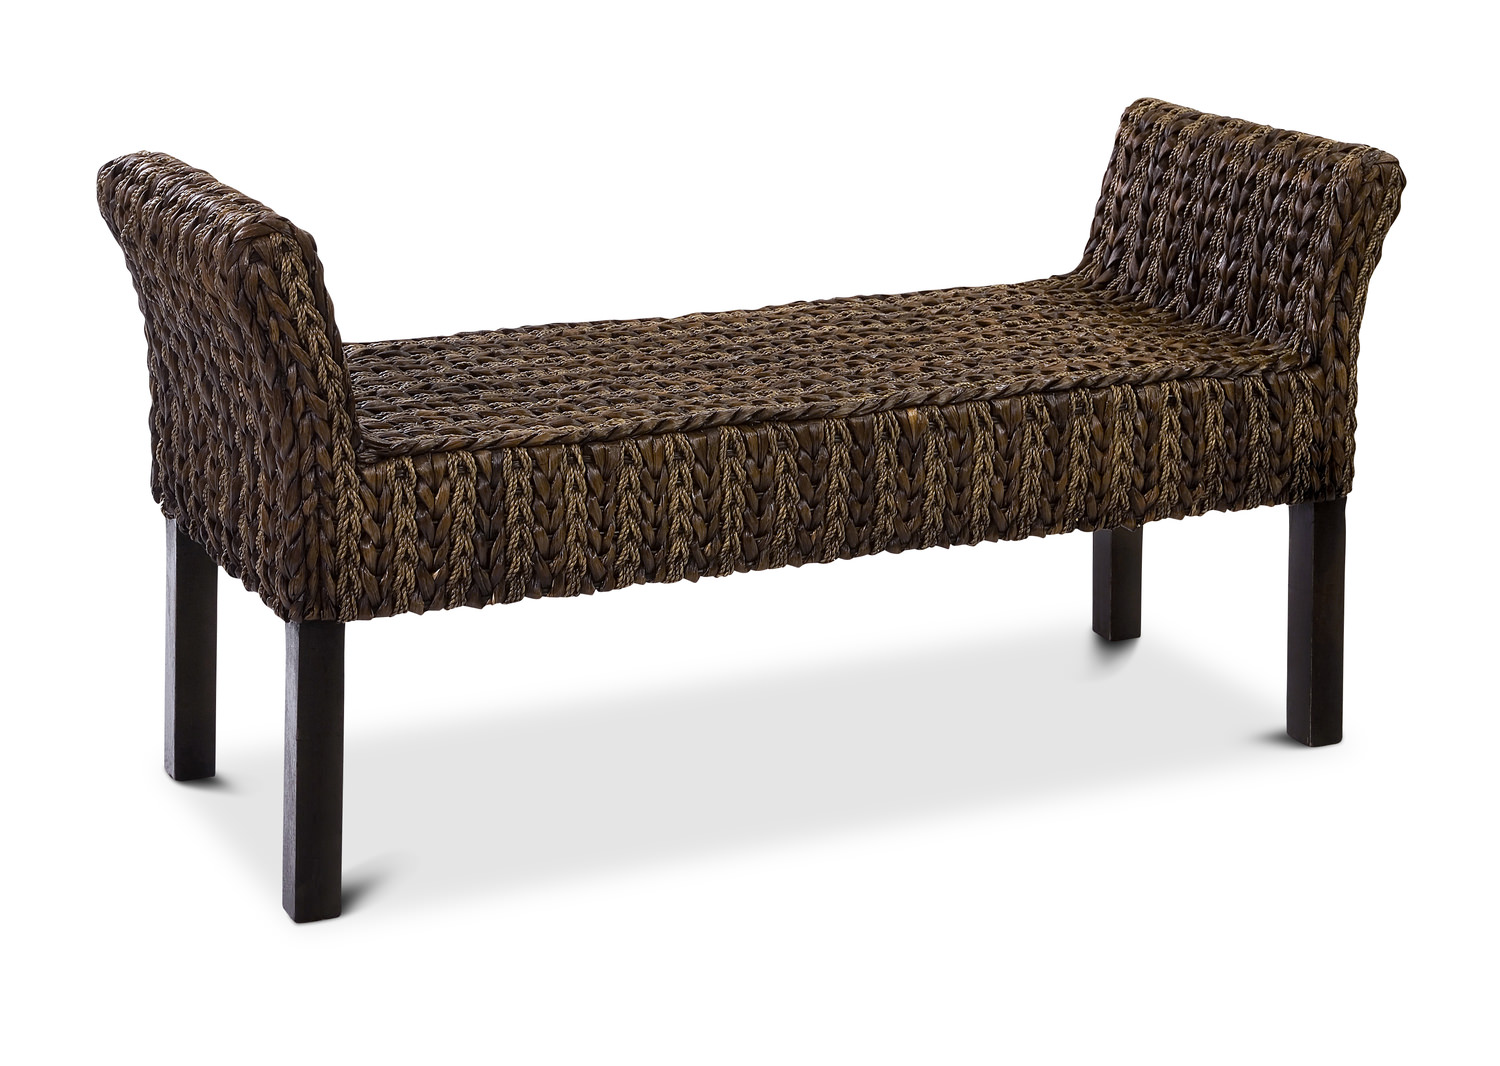 Woven Bench Hom Furniture